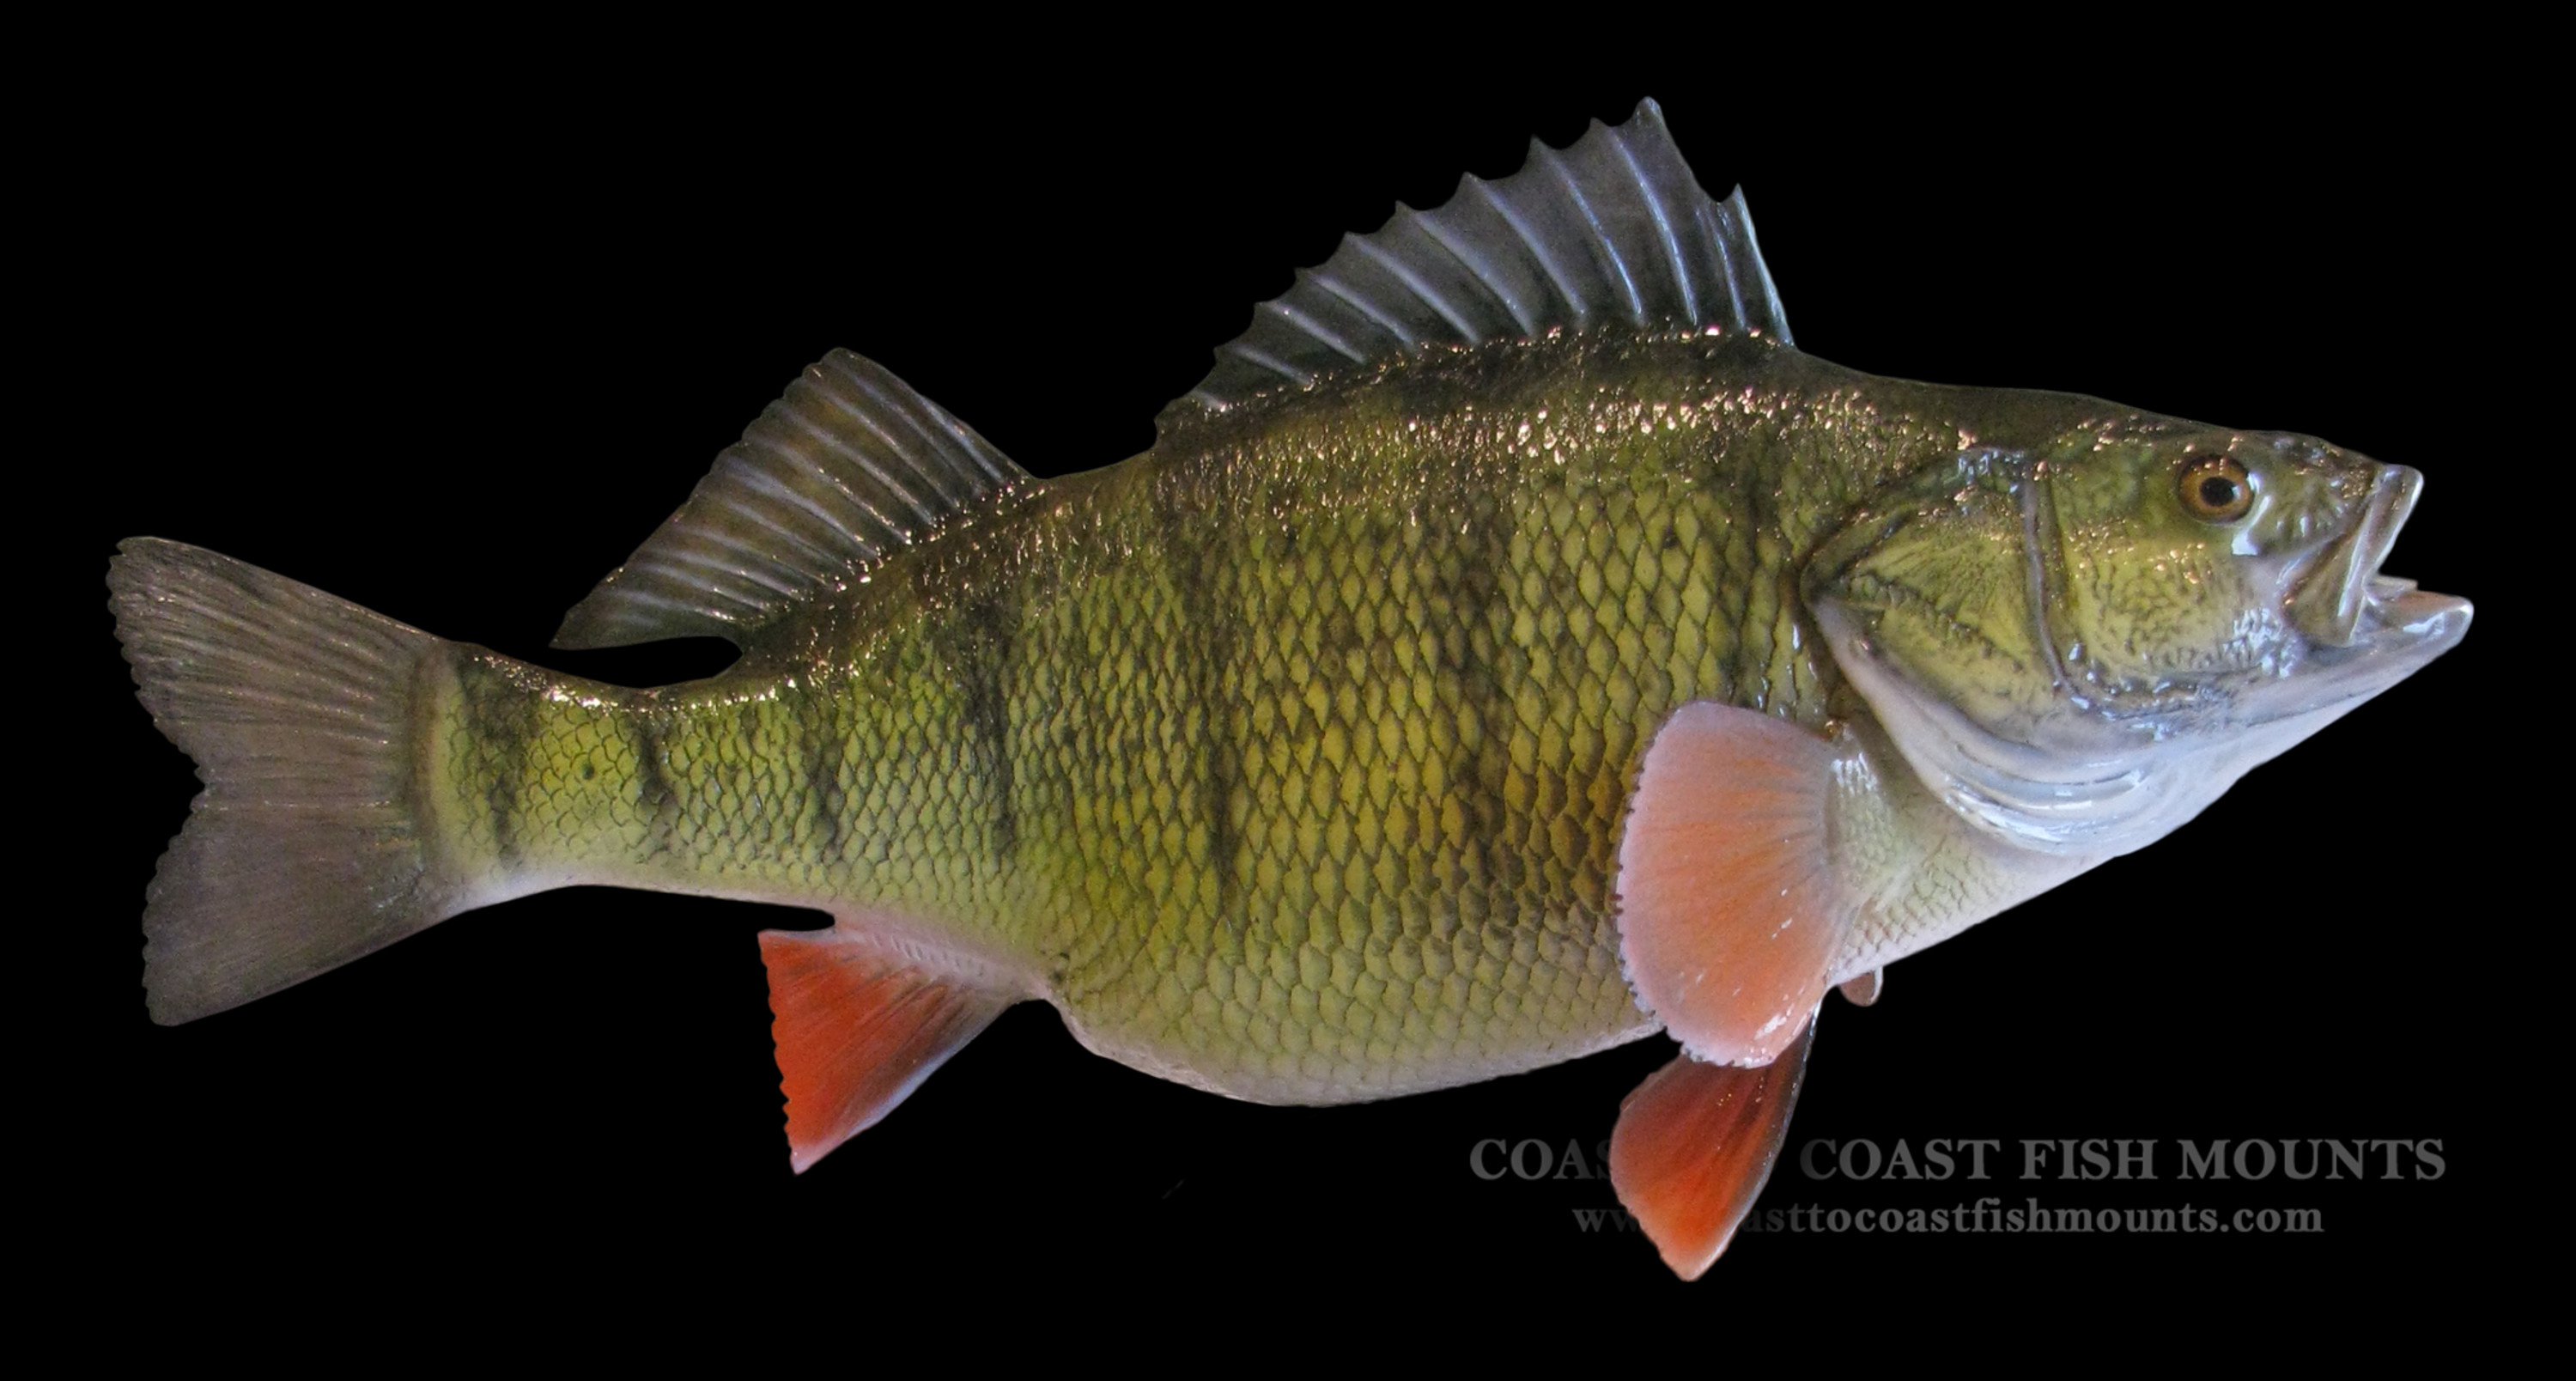 Yellow perch fish mount and fish replicas coast to coast for Sun perch fish